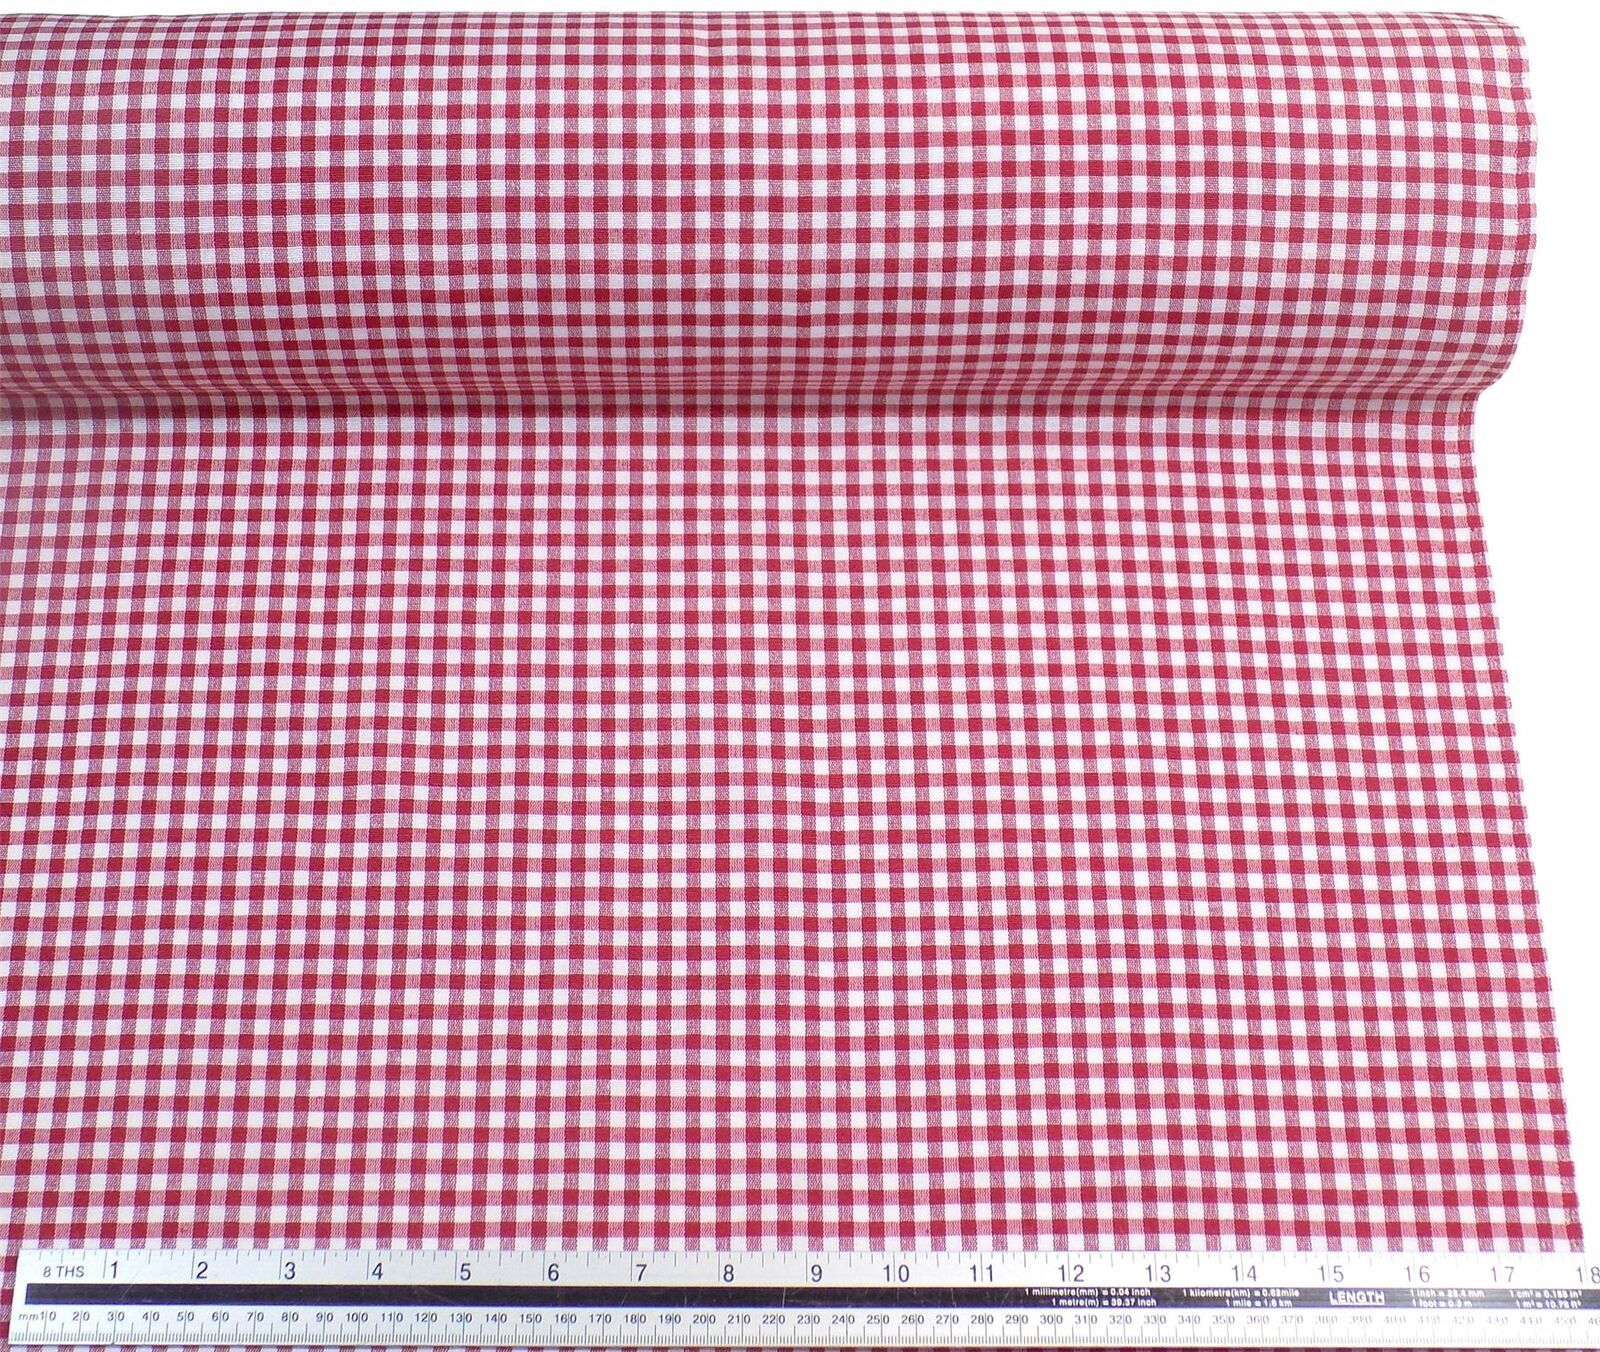 Red White Gingham Check Cotton Blend High Quality Fabric Material 3 Sizes